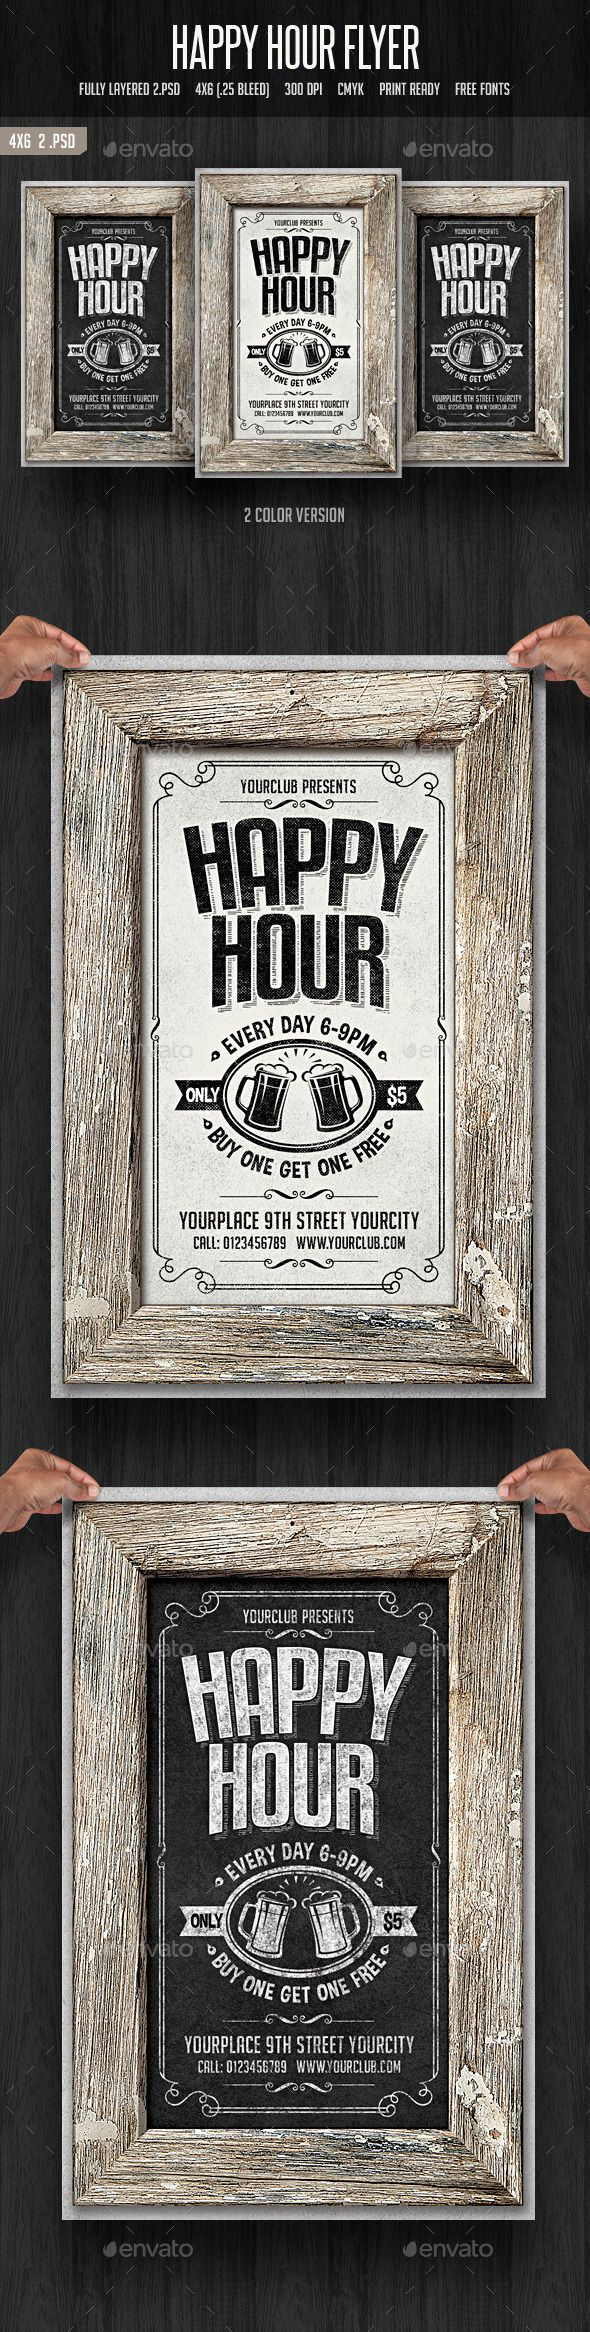 Happy Hour Flyer 2 Happy Hour Flyer Template And Template